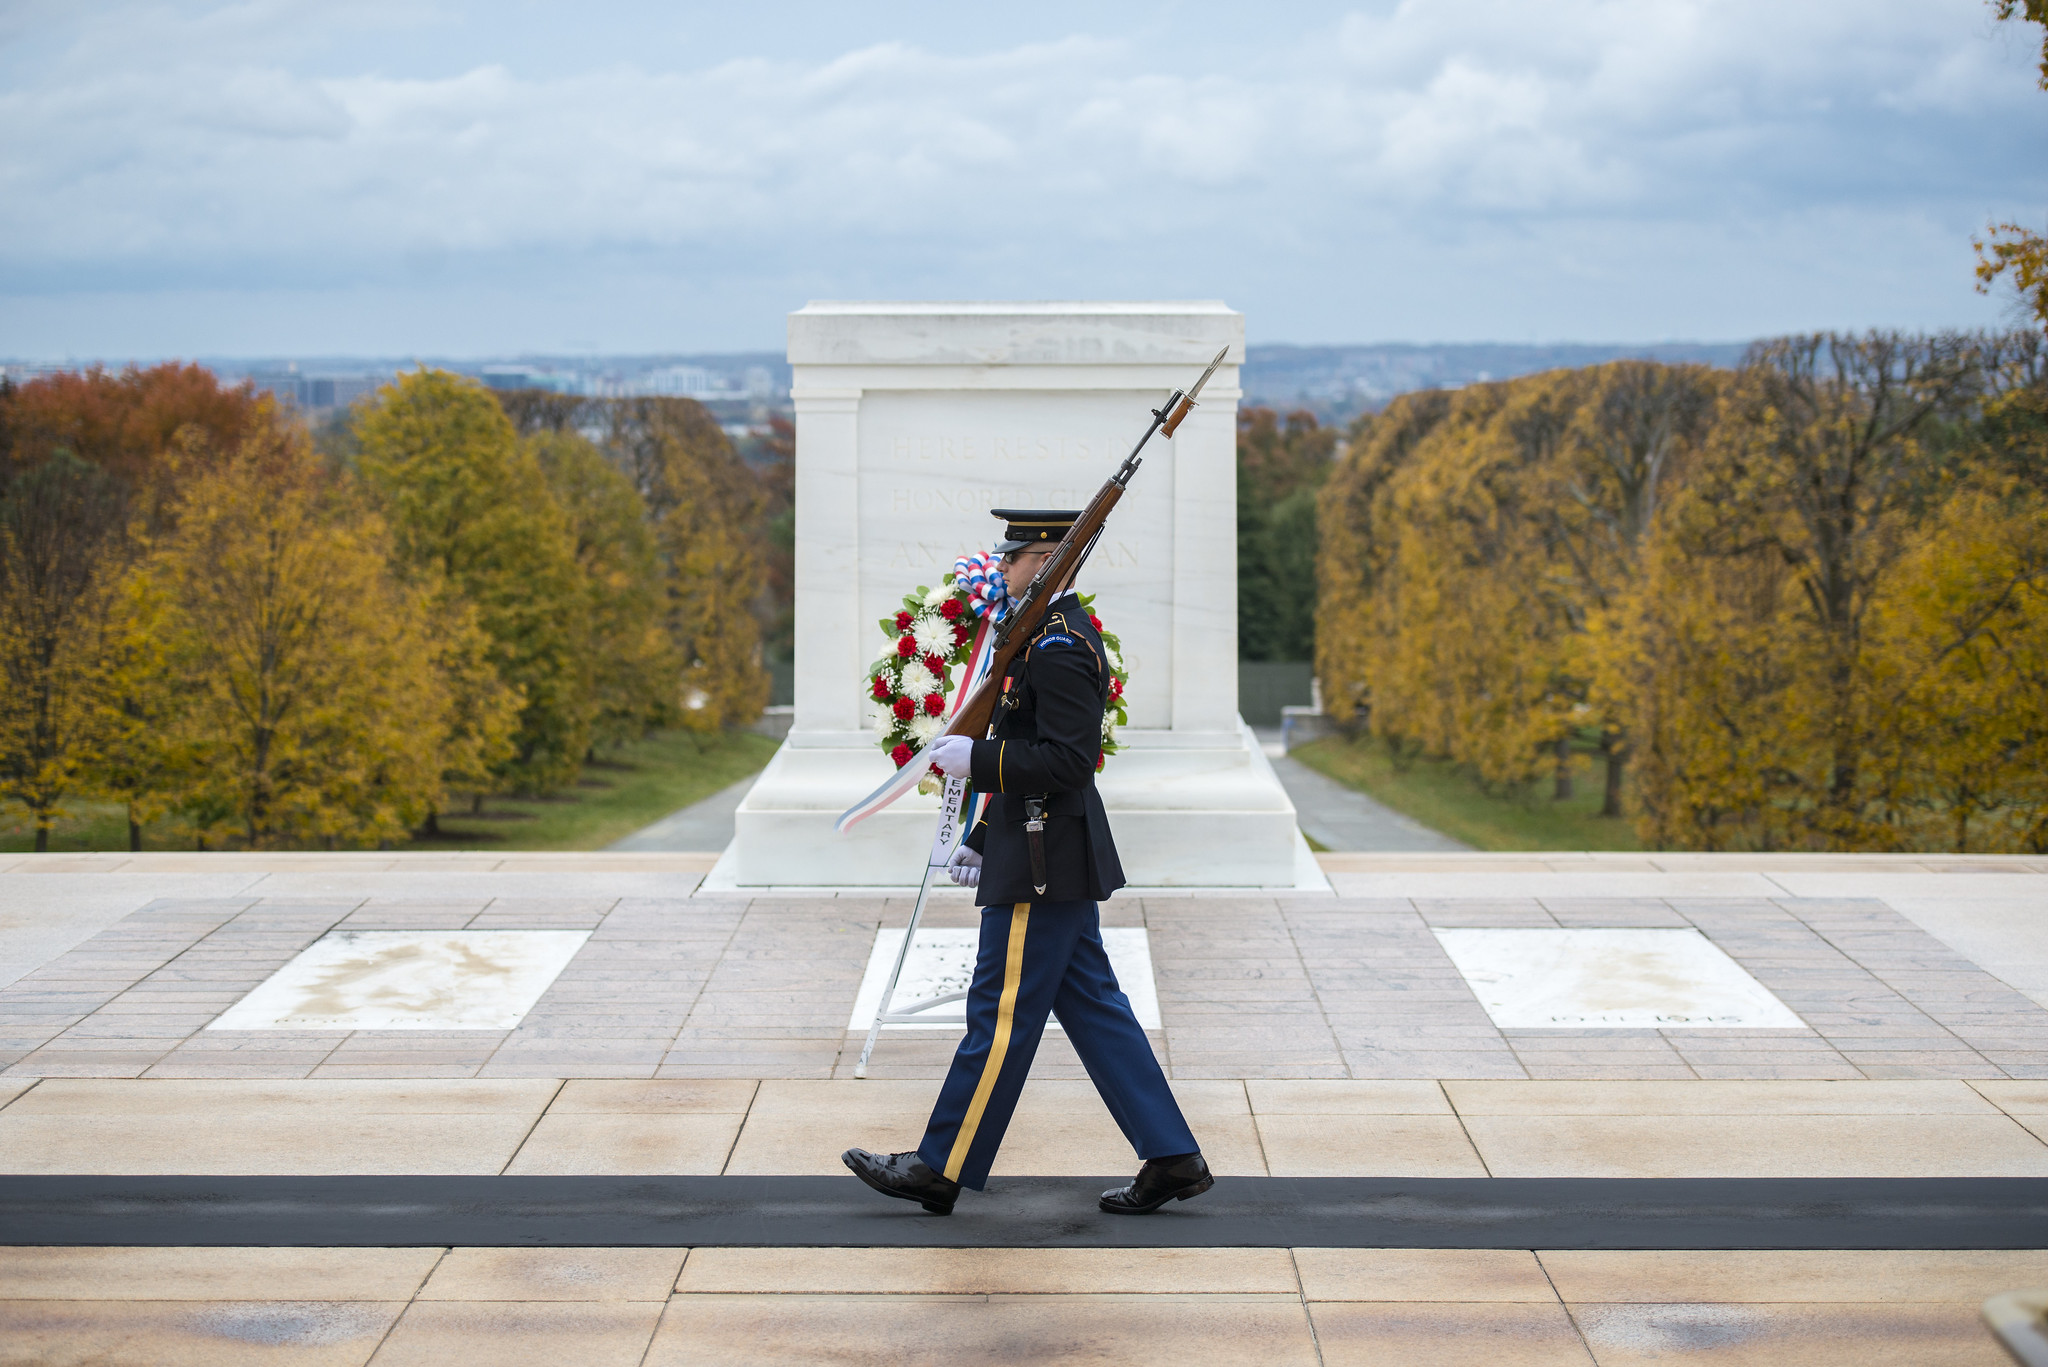 A sentinel guarding the Tomb of the Unknown Soldier, Arlington National Cemetery